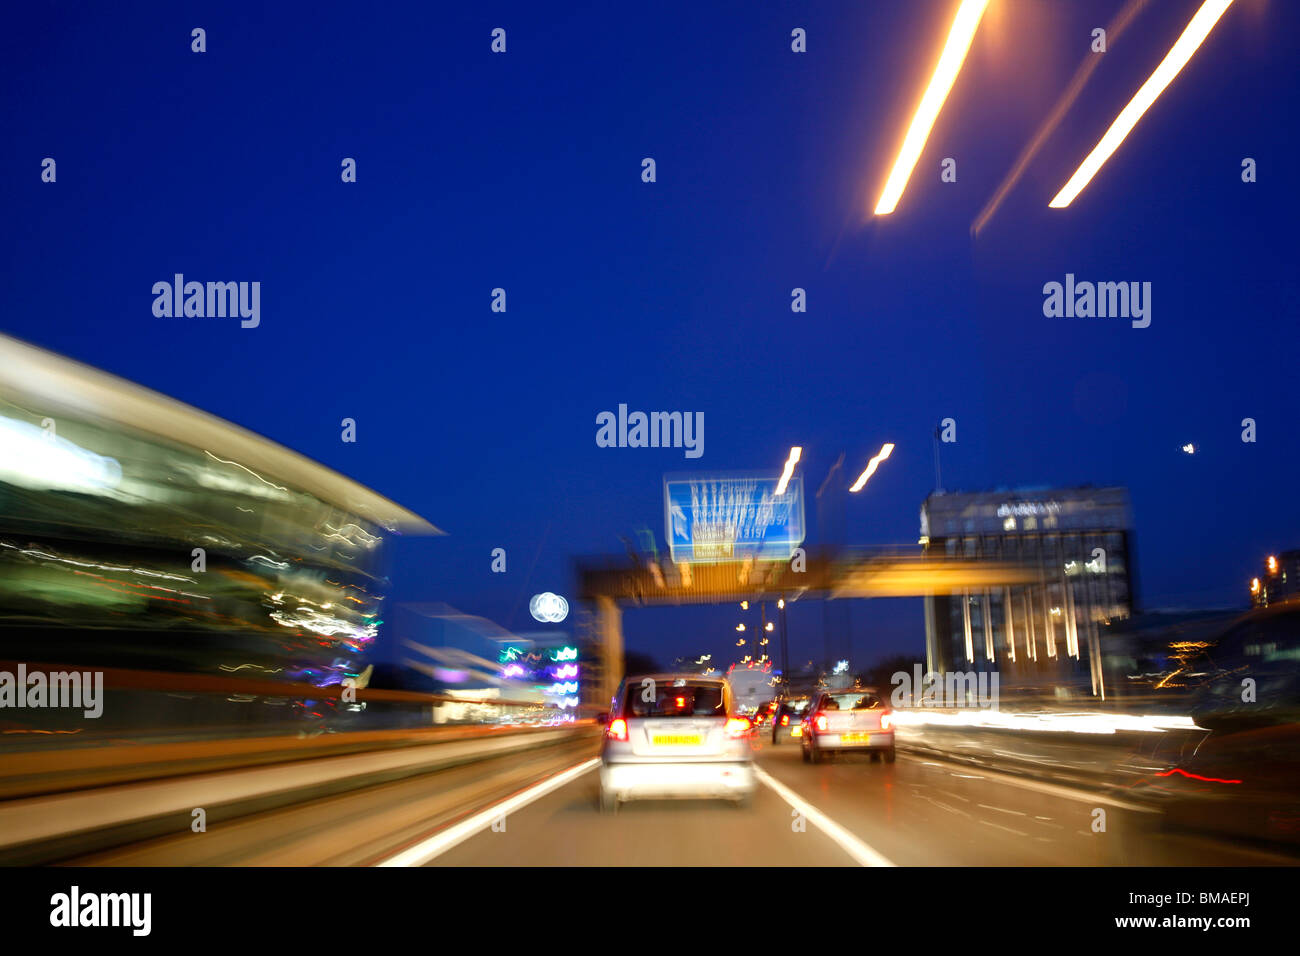 Travelling along the elevated section of the M4 motorway at Brentford, London, UK - Stock Image